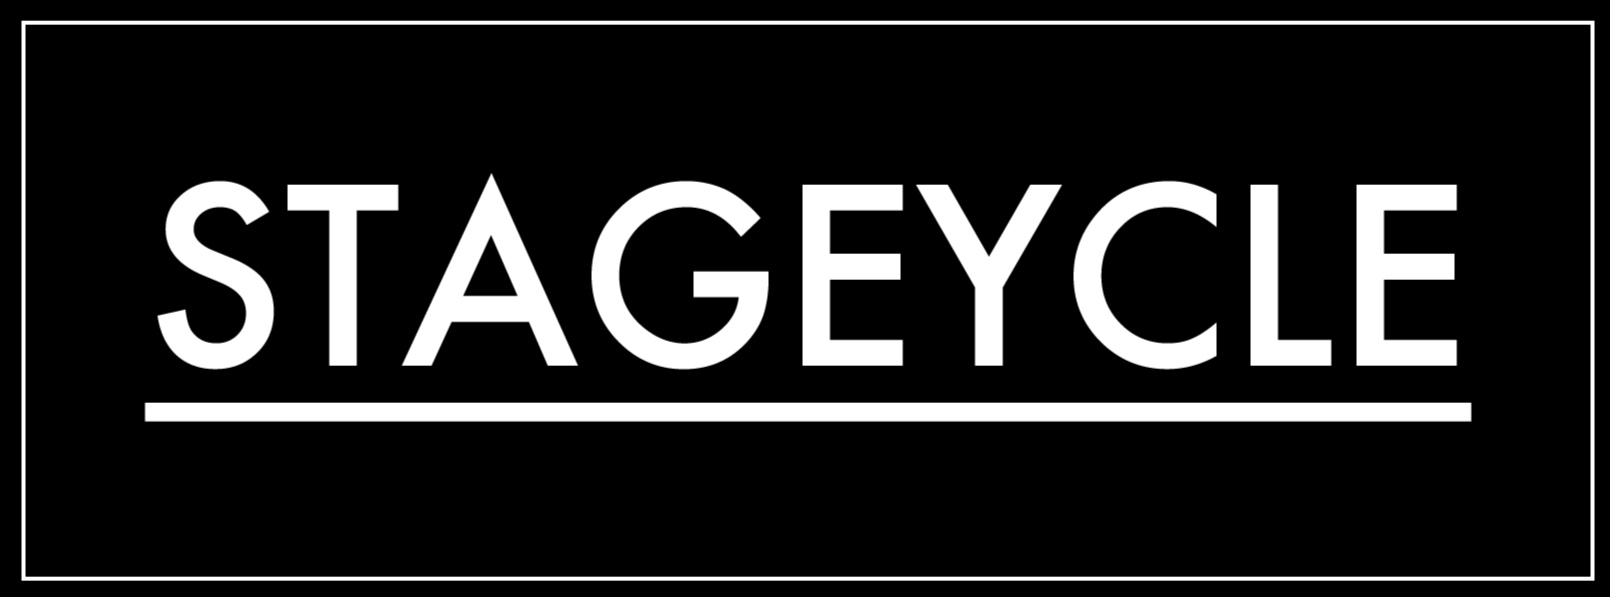 Stageycle logo.png